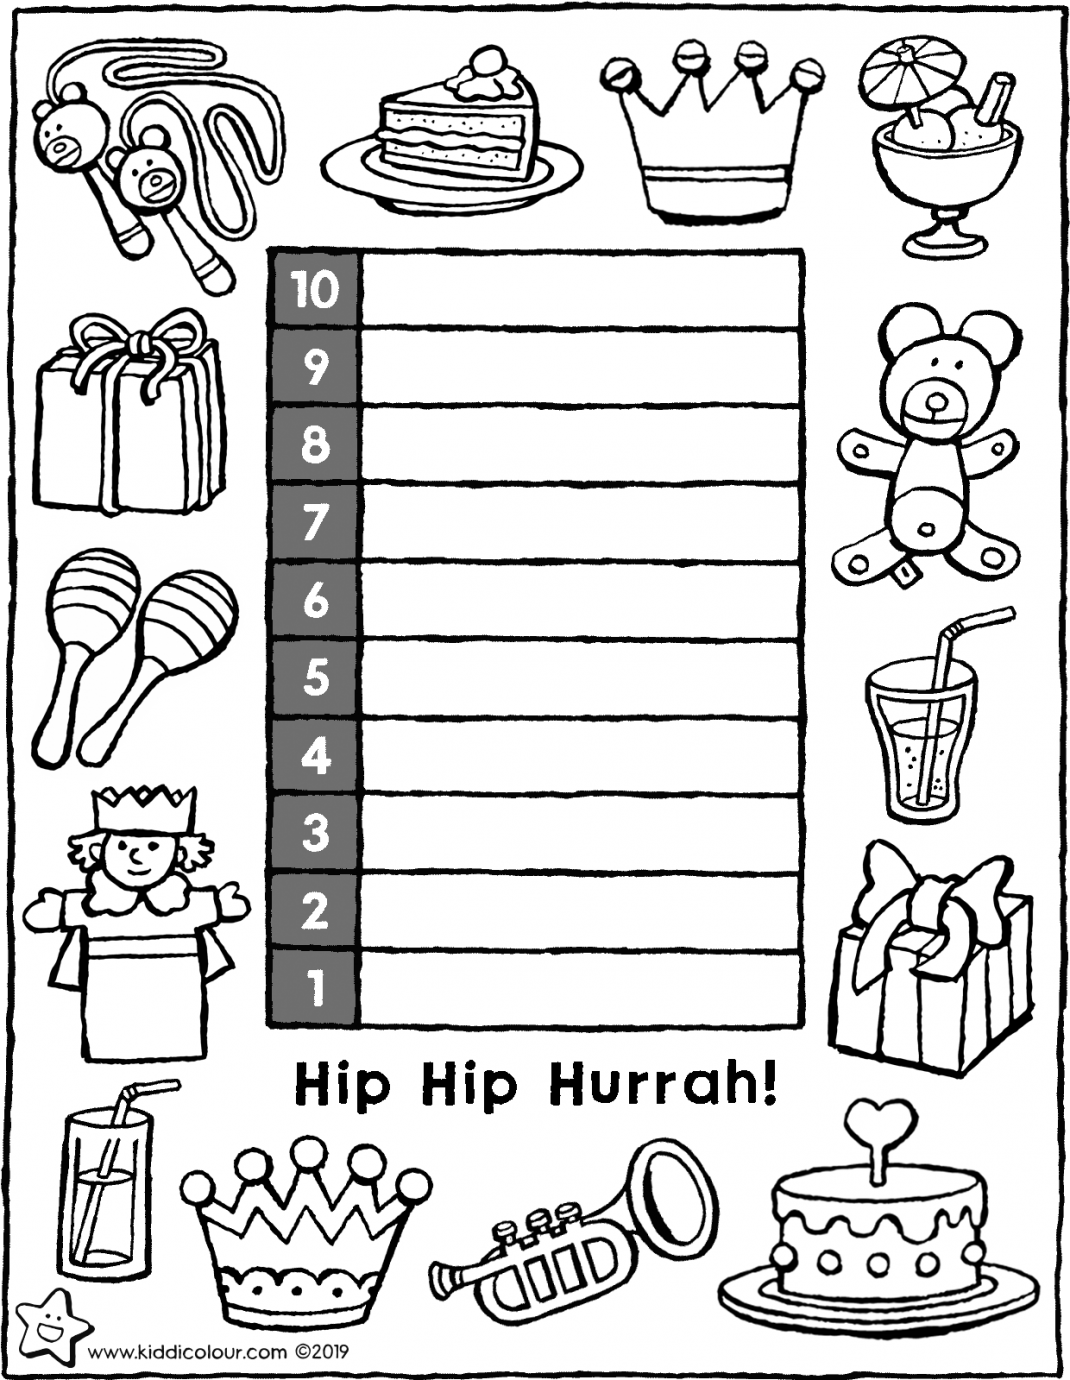 countdown calendar for your birthday colouring page drawing picture 01V